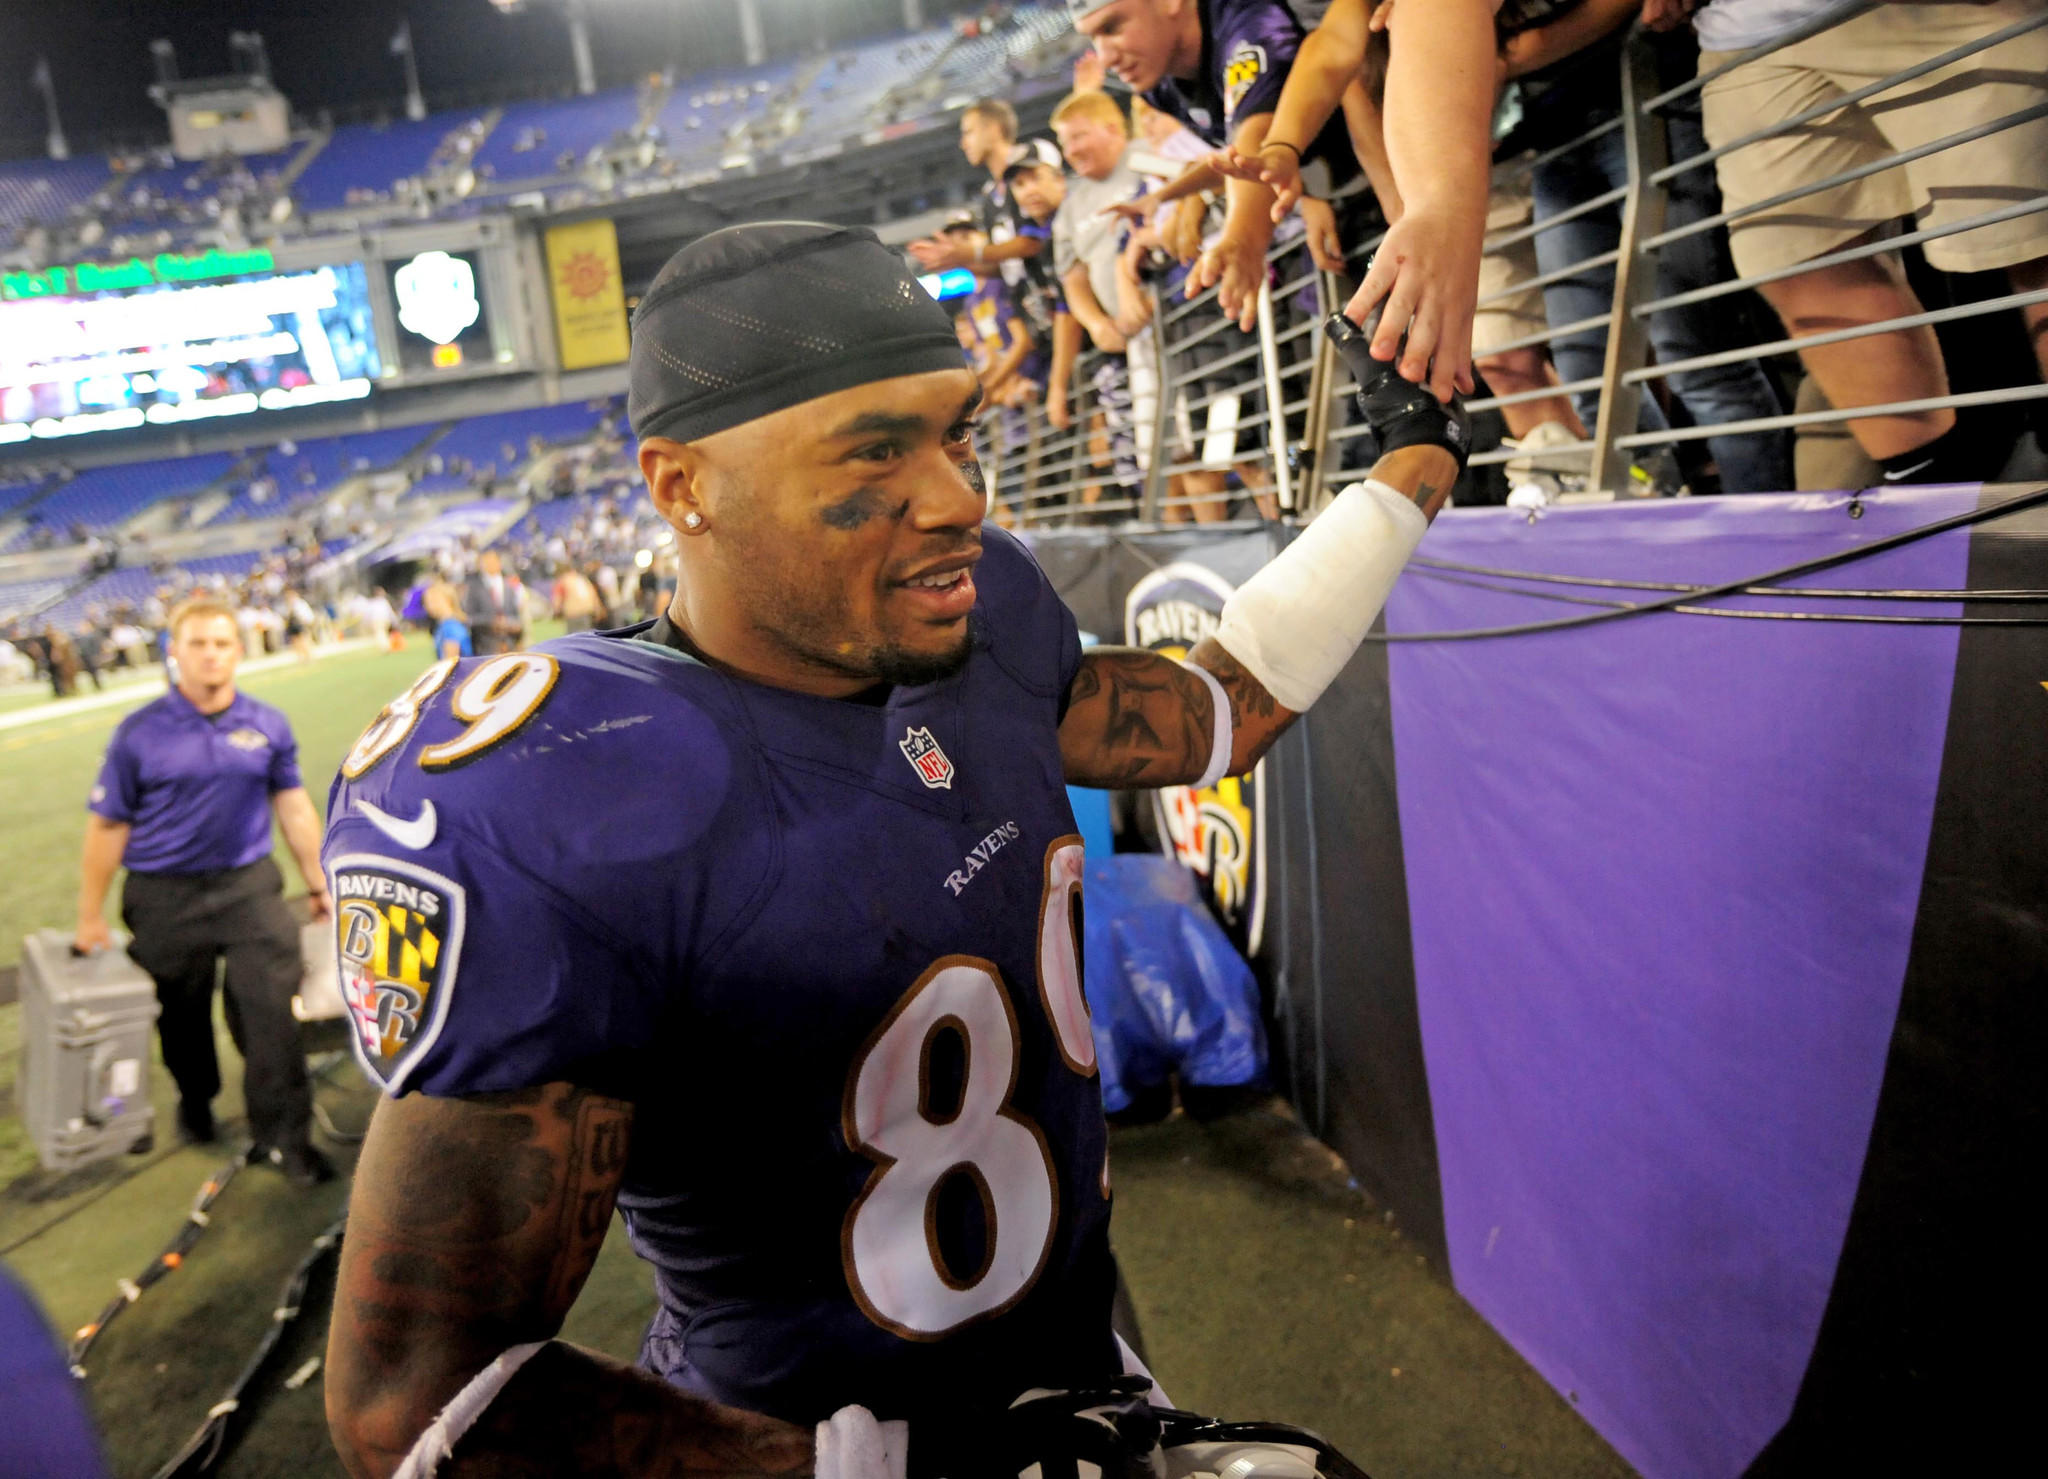 Ravens wide receiver Steve Smith Sr. high fives fans after beating the Pittsburgh Steelers 26-6 at M&T Bank Stadium.